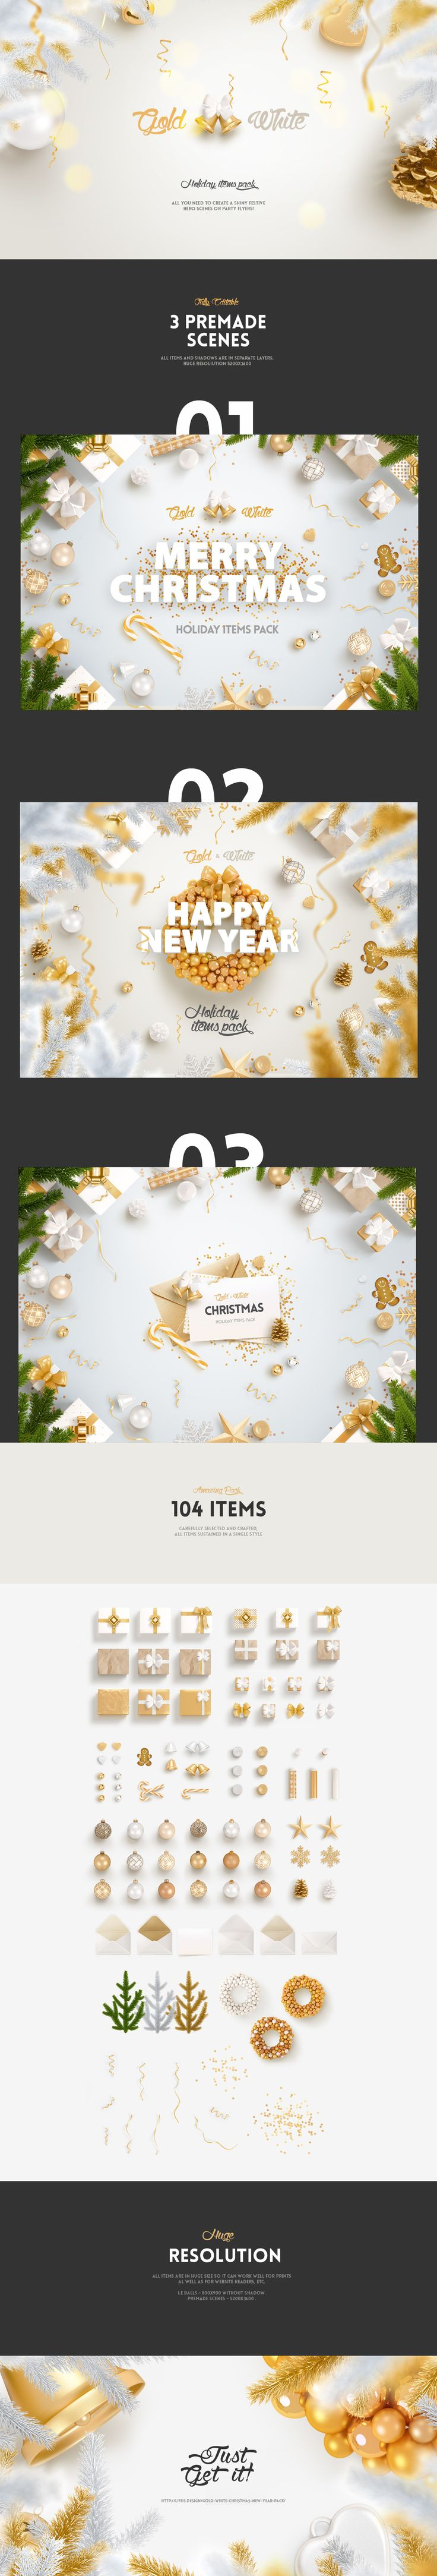 Holiday items pack with over a hundred items in a huge resolution. All you need to decorate your website for christmas and new year holidays. Create your shiny hero scene or party flyer with ease. http://graphicriver.net/item/gold-white-christmas-new-yea…